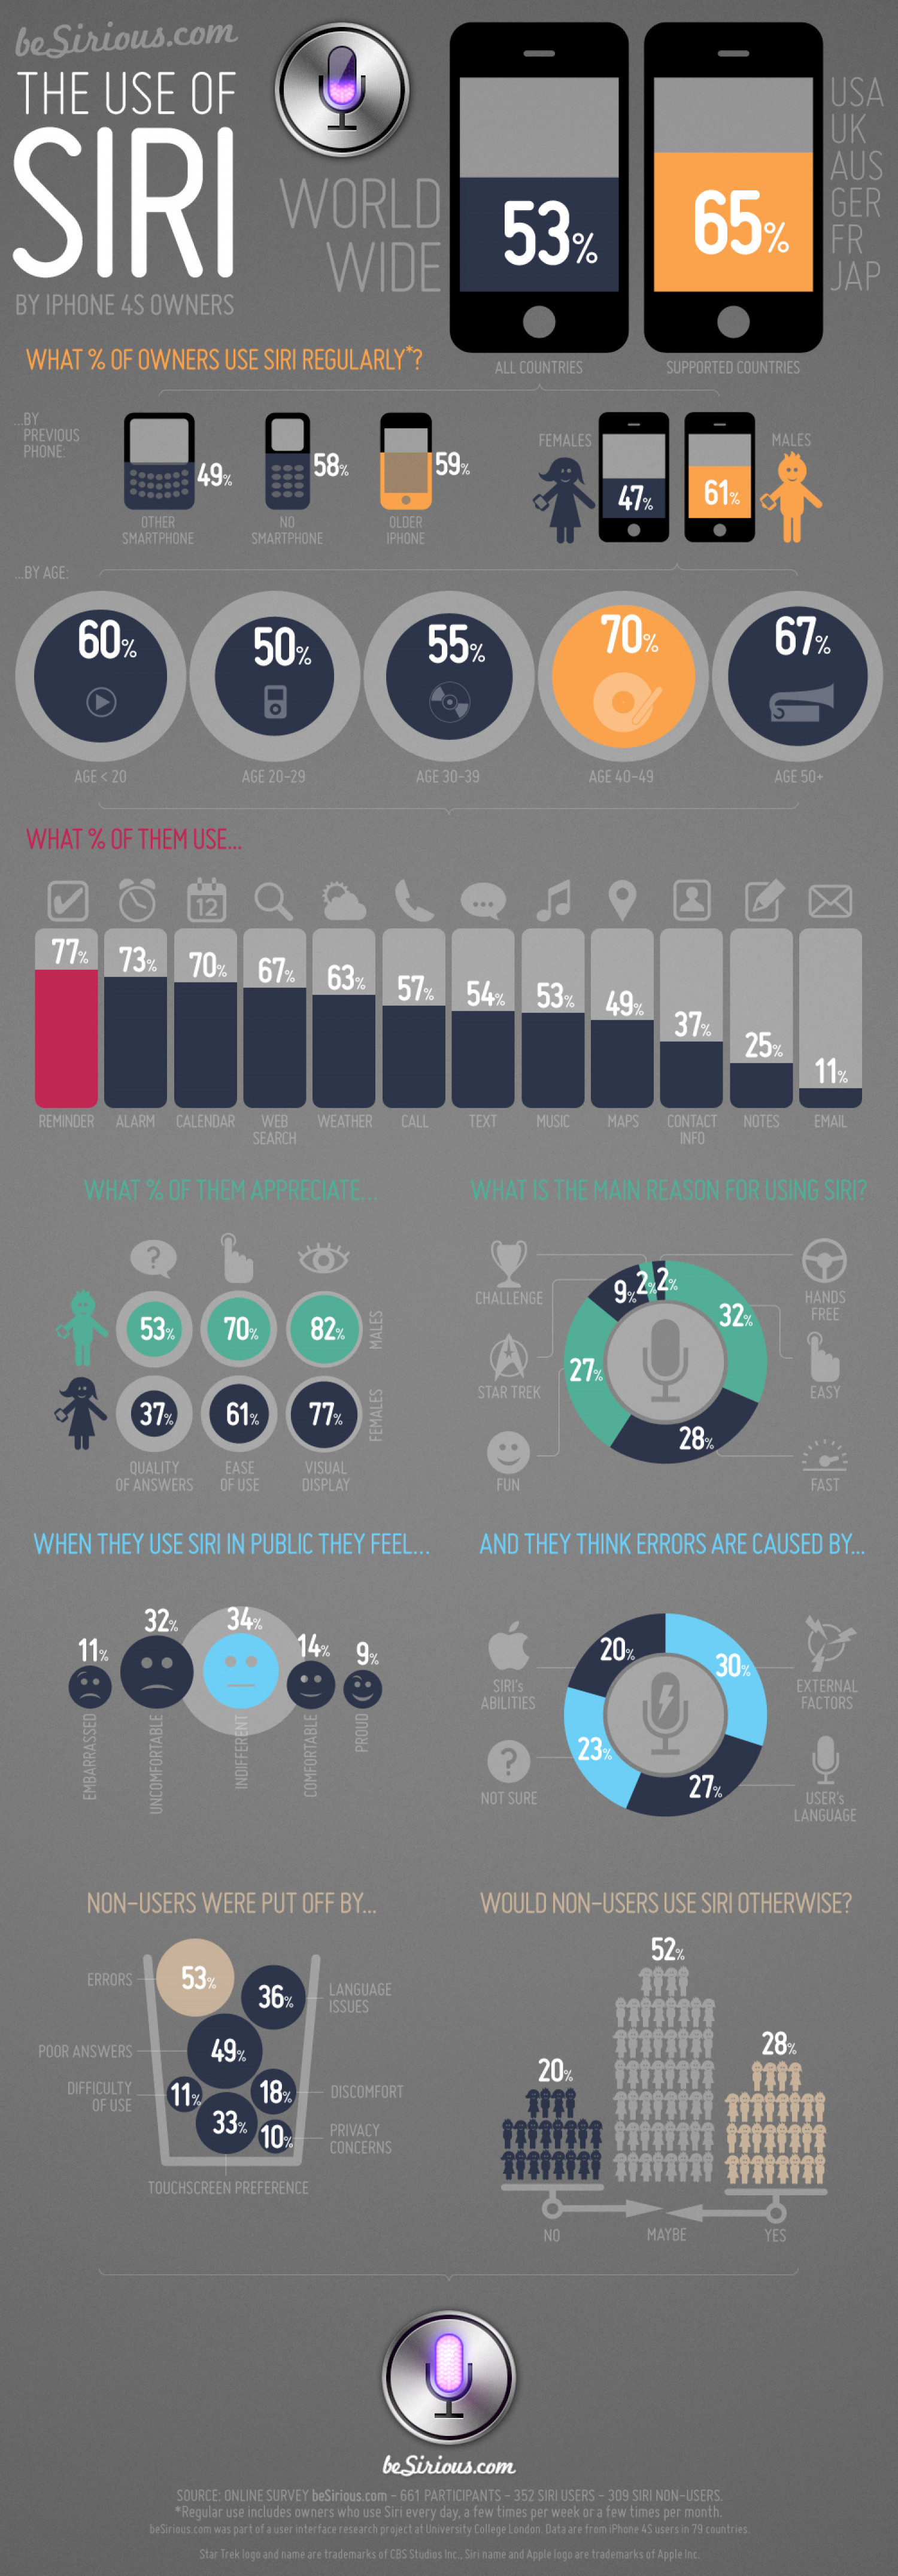 The use of Siri Infographic